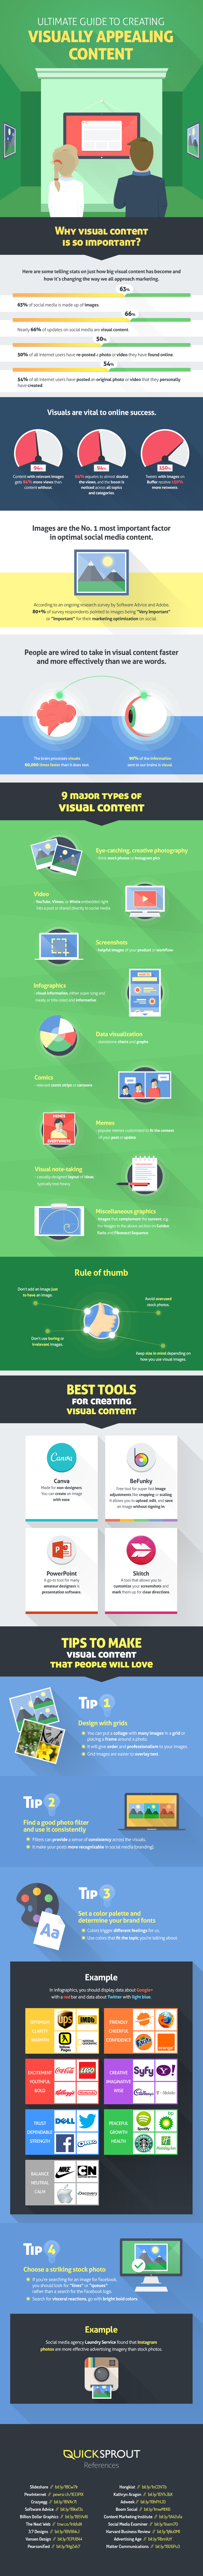 infographic creating visually appealing content